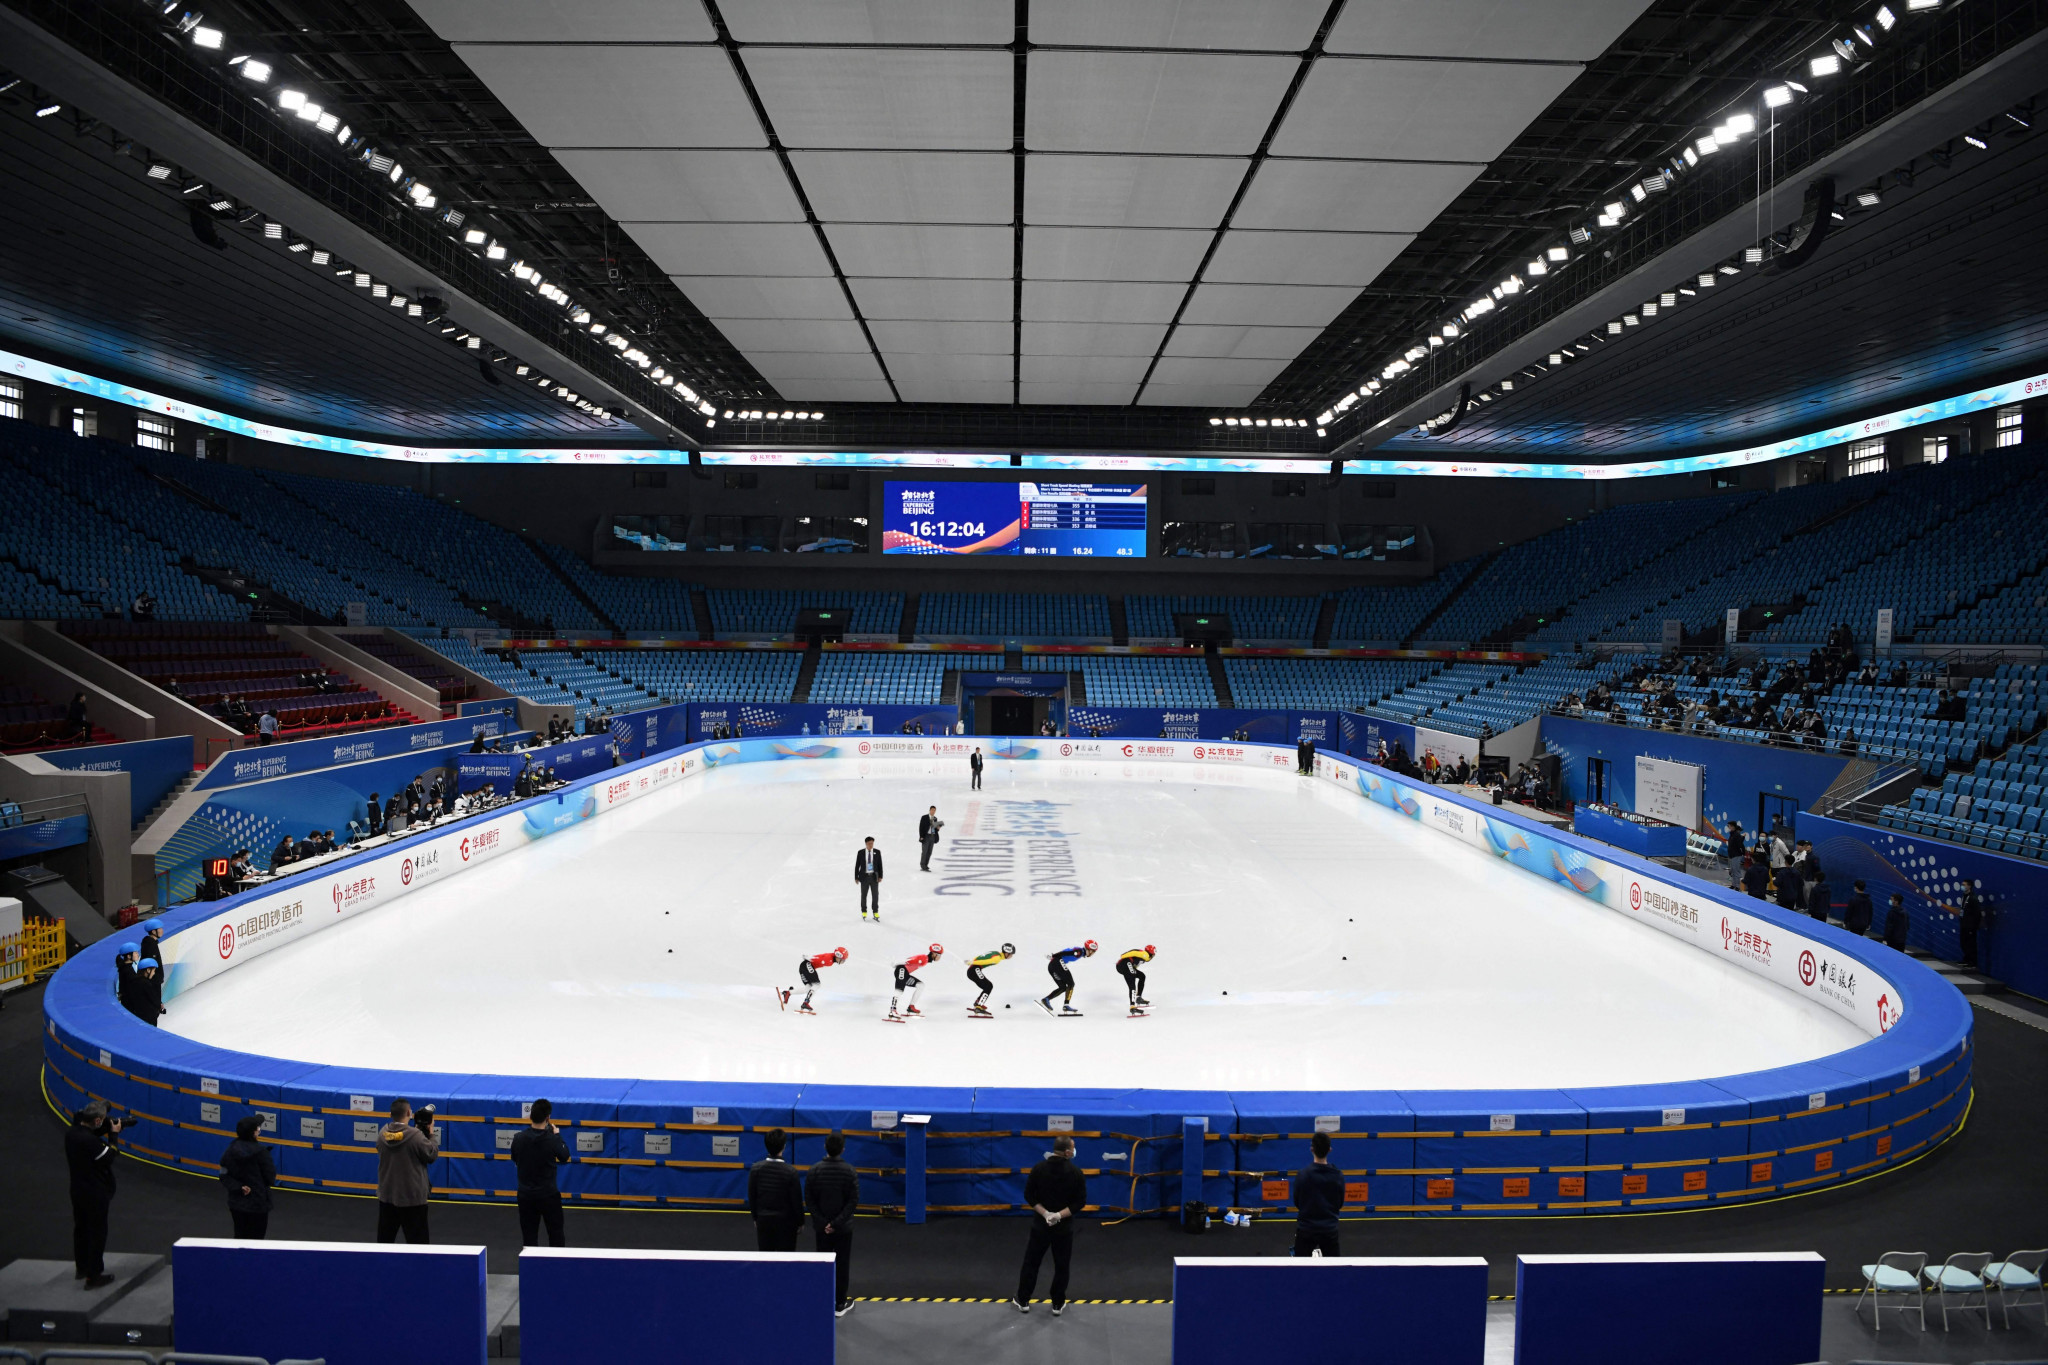 Organisers say spectators may be able to attend Beijing 2022 test events